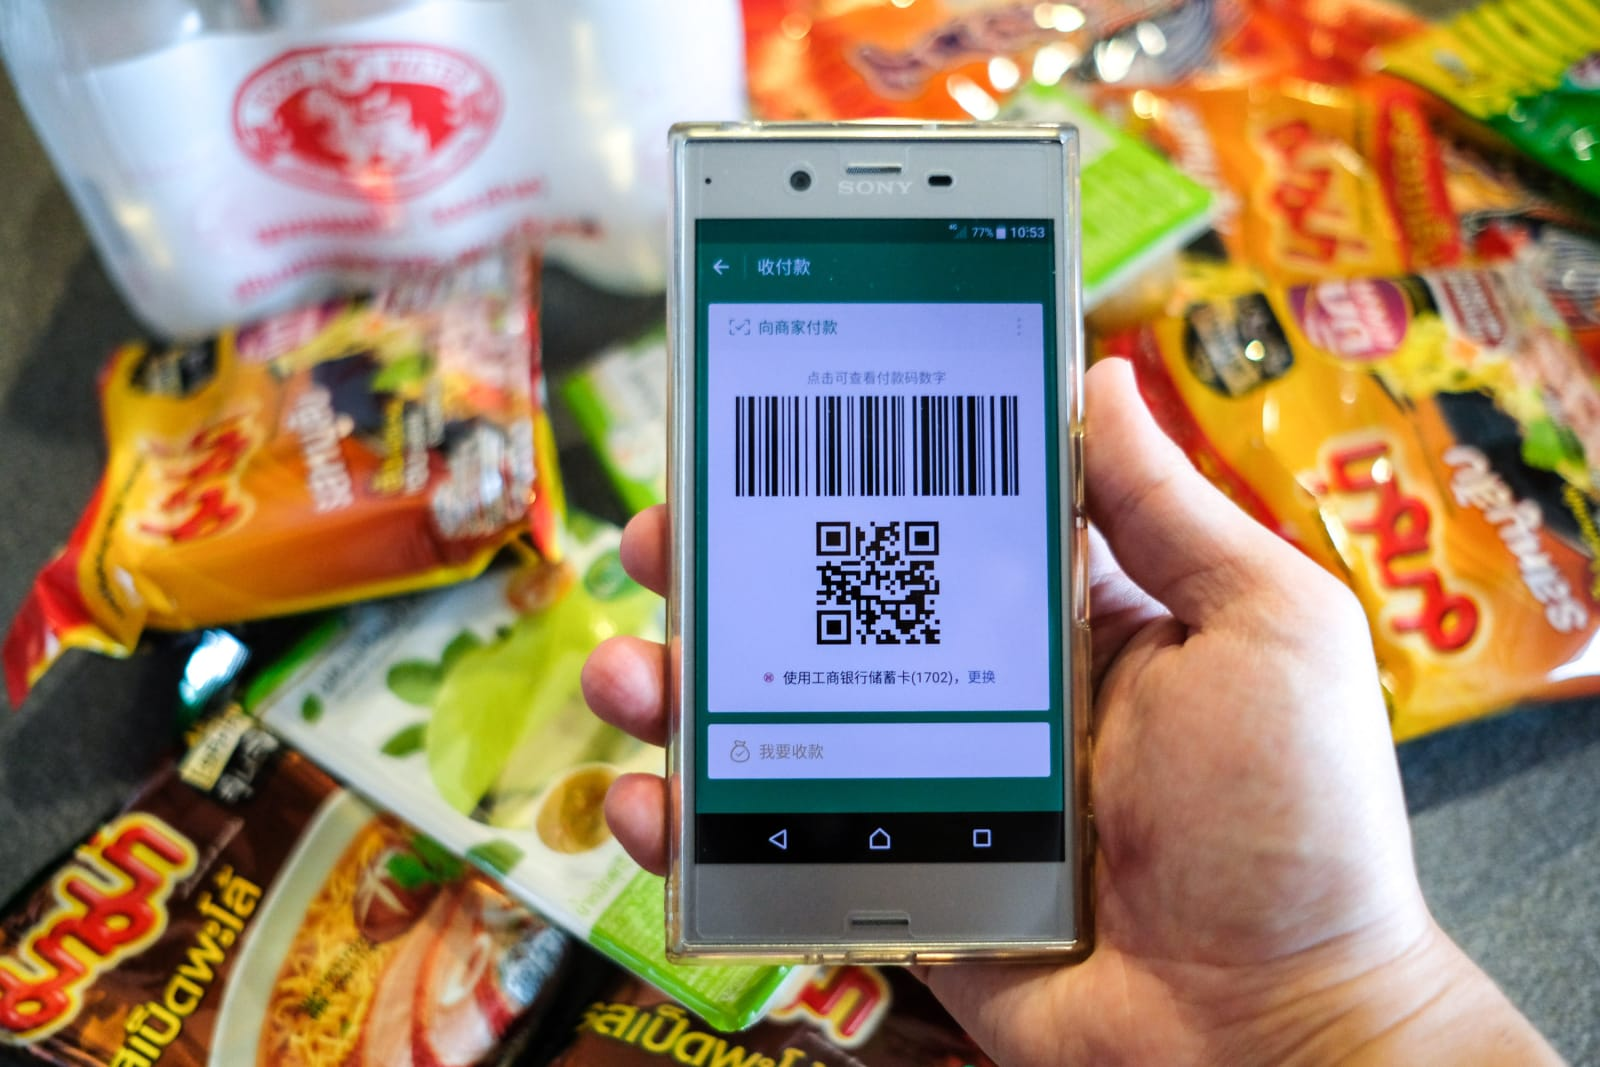 CHINA-WORLD-MOBILE PAYMENT